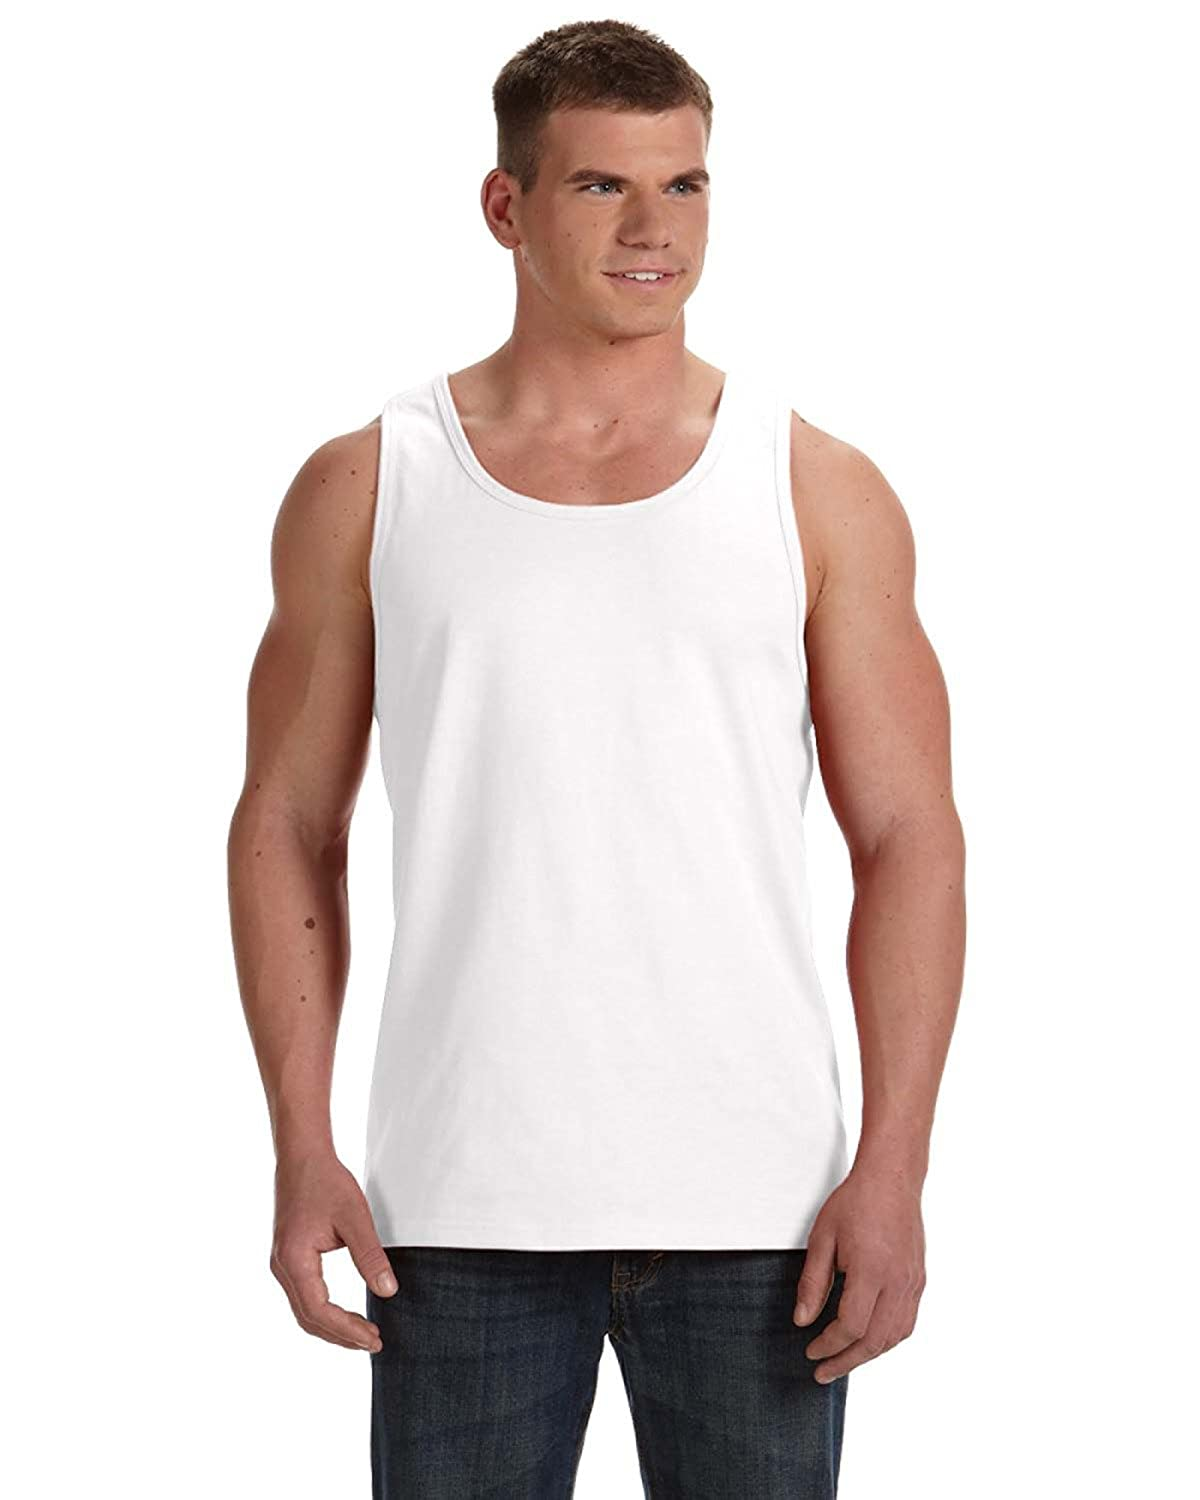 S - Fruit of the Loom Adult 5 oz HD Cotton Tank Style # 39TKR - Original Label White